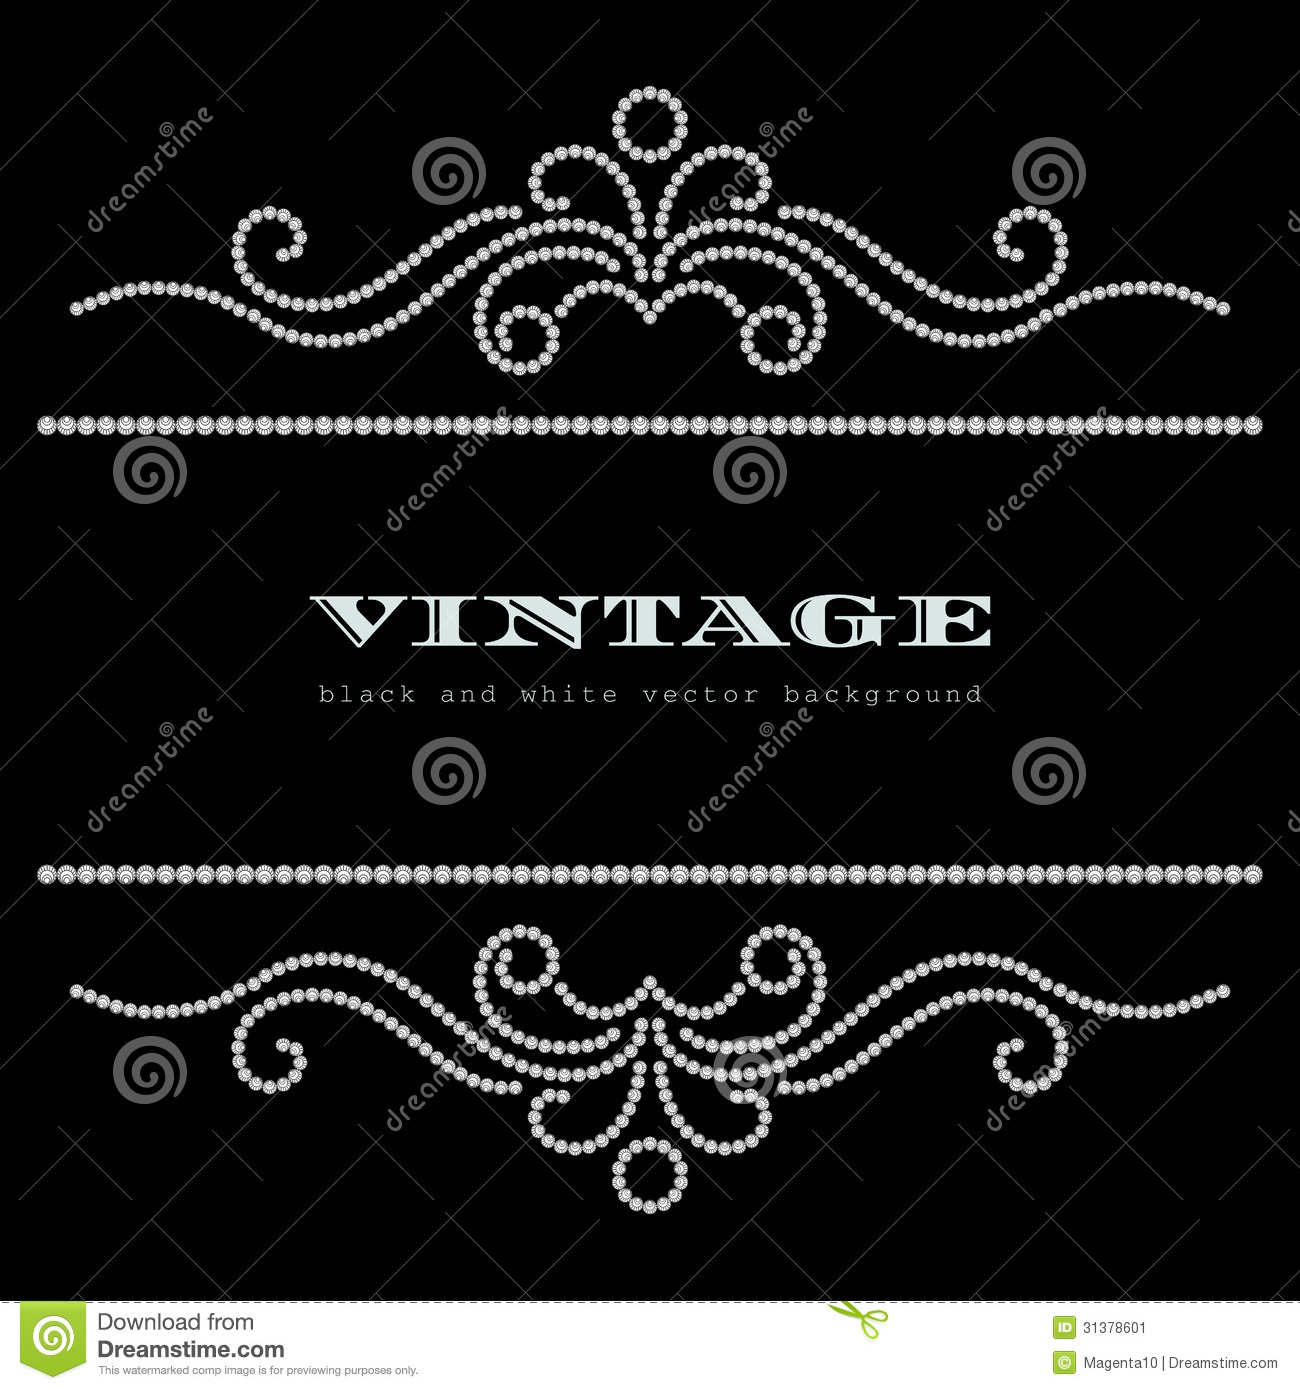 Vintage Jewelry Background Stock Vector Illustration Of Header